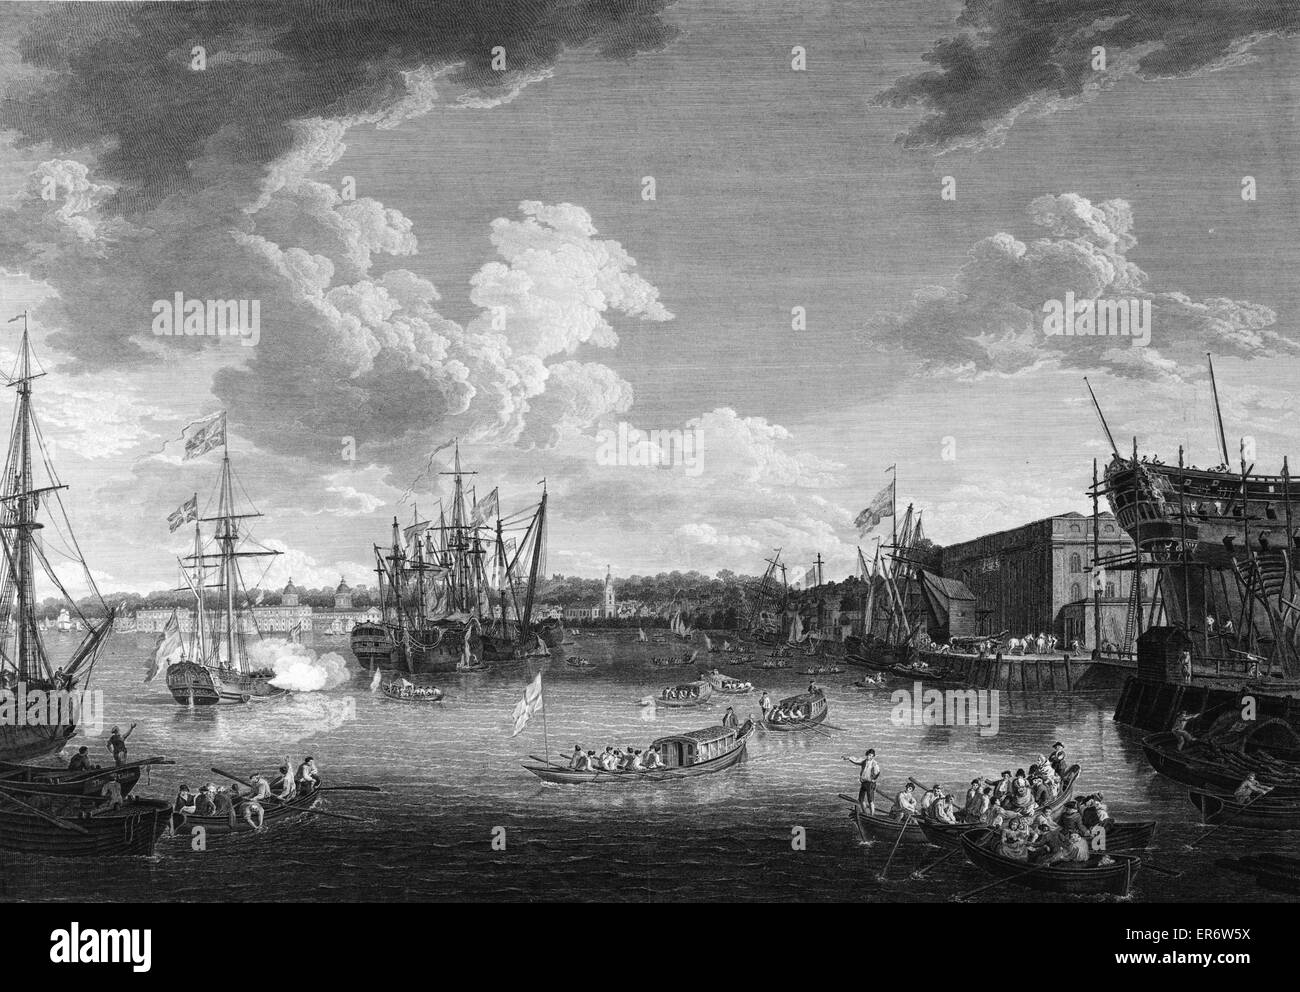 To the King's most excellent majesty, this view of the royal dock yard at Deptford  Boats on Thames River and - Stock Image